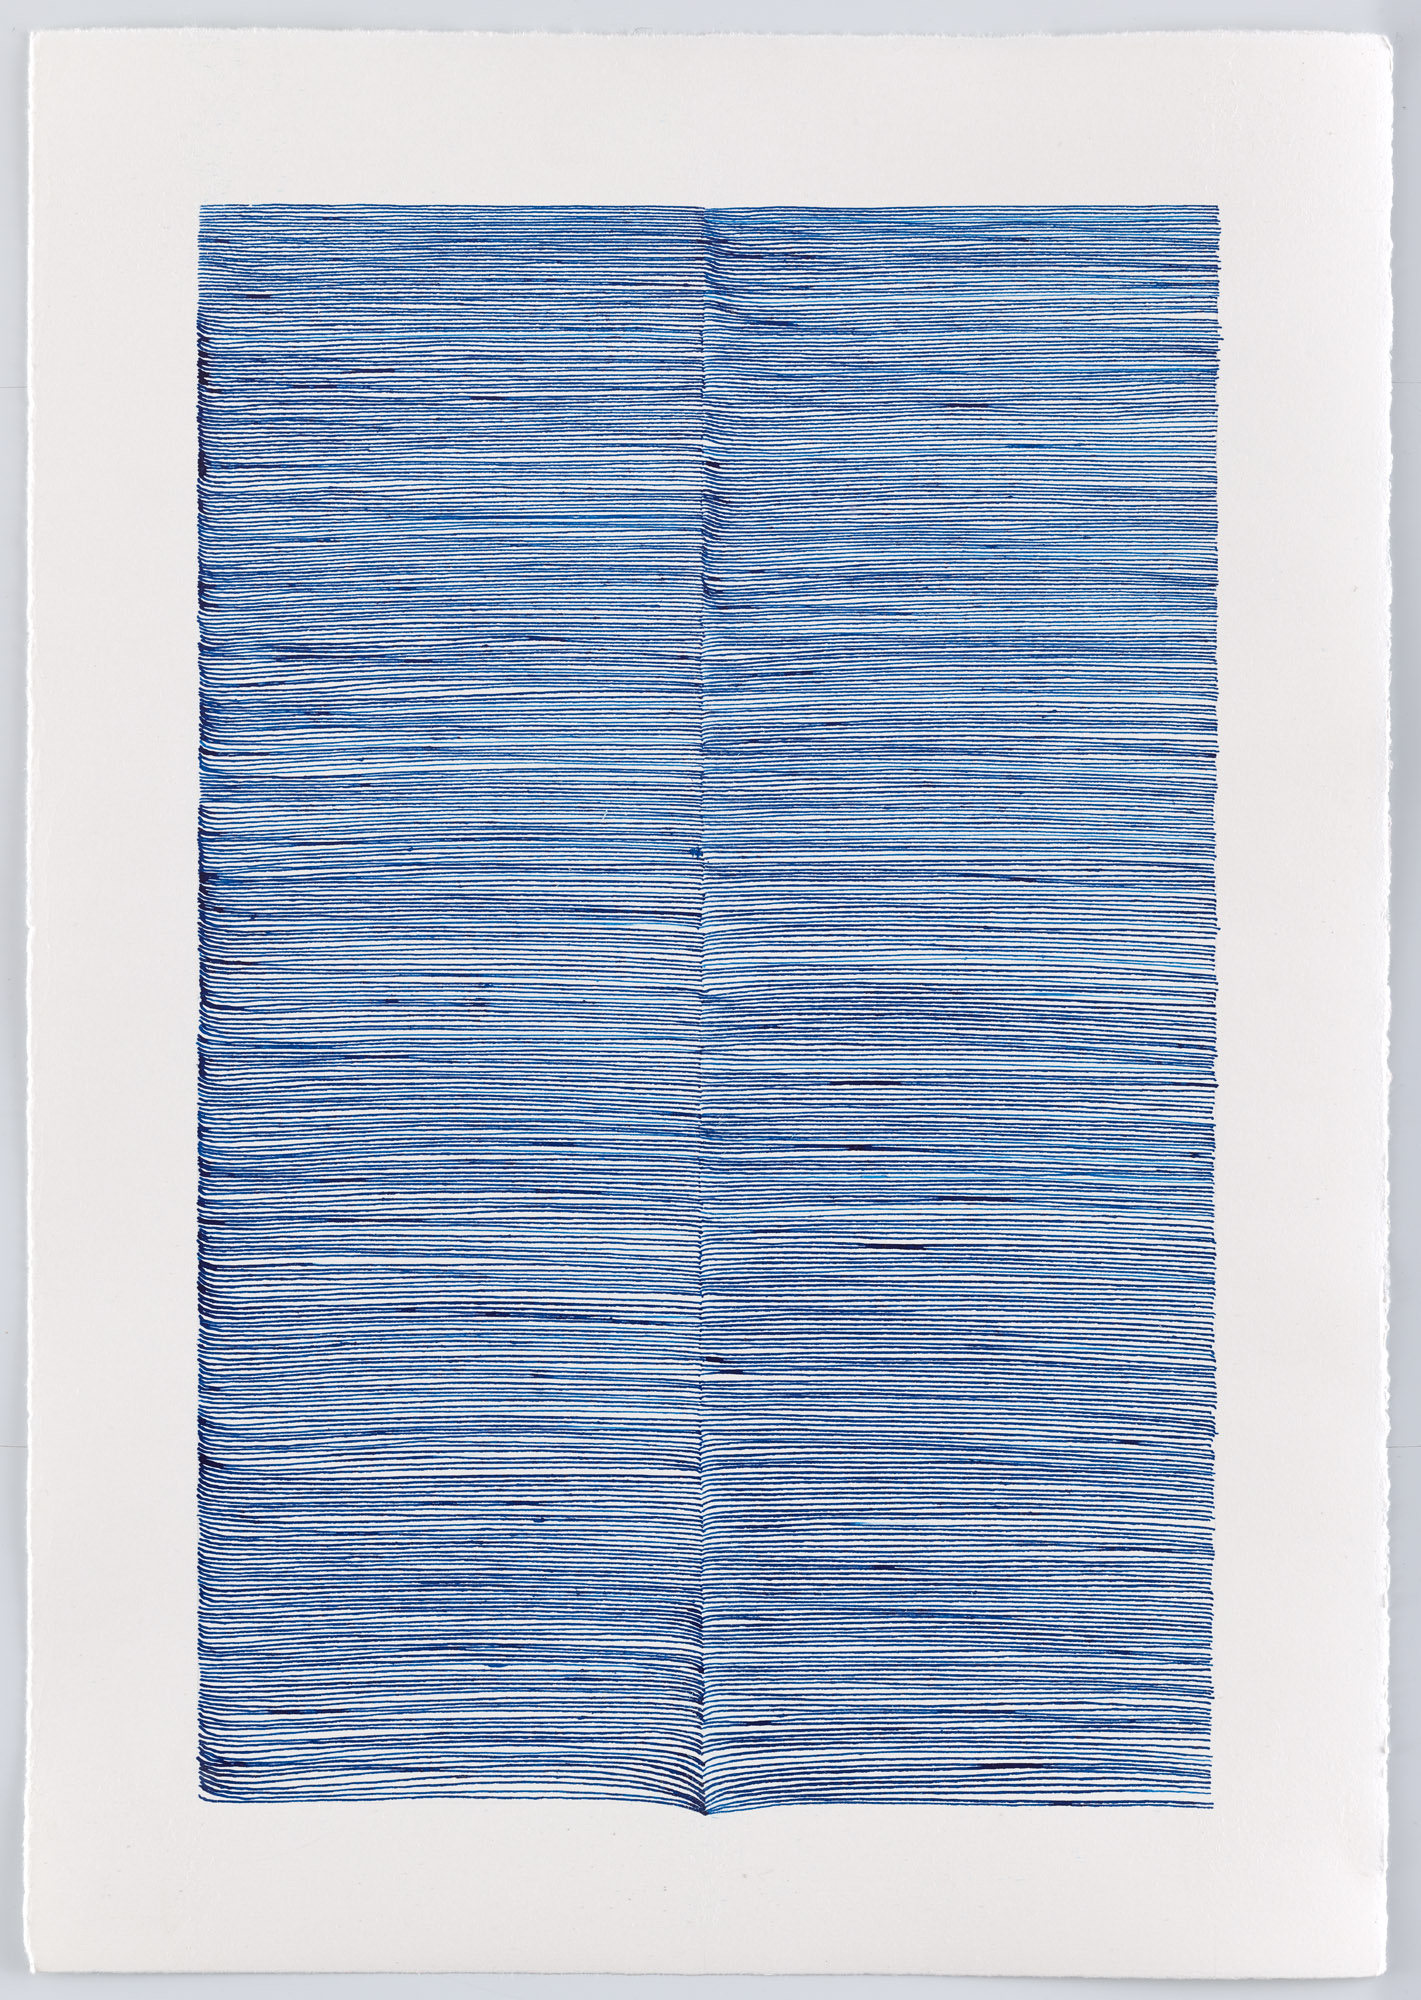 BK P13006 | untitled | blue ink on paper | 42x29cm | 2016 | private collection berlin